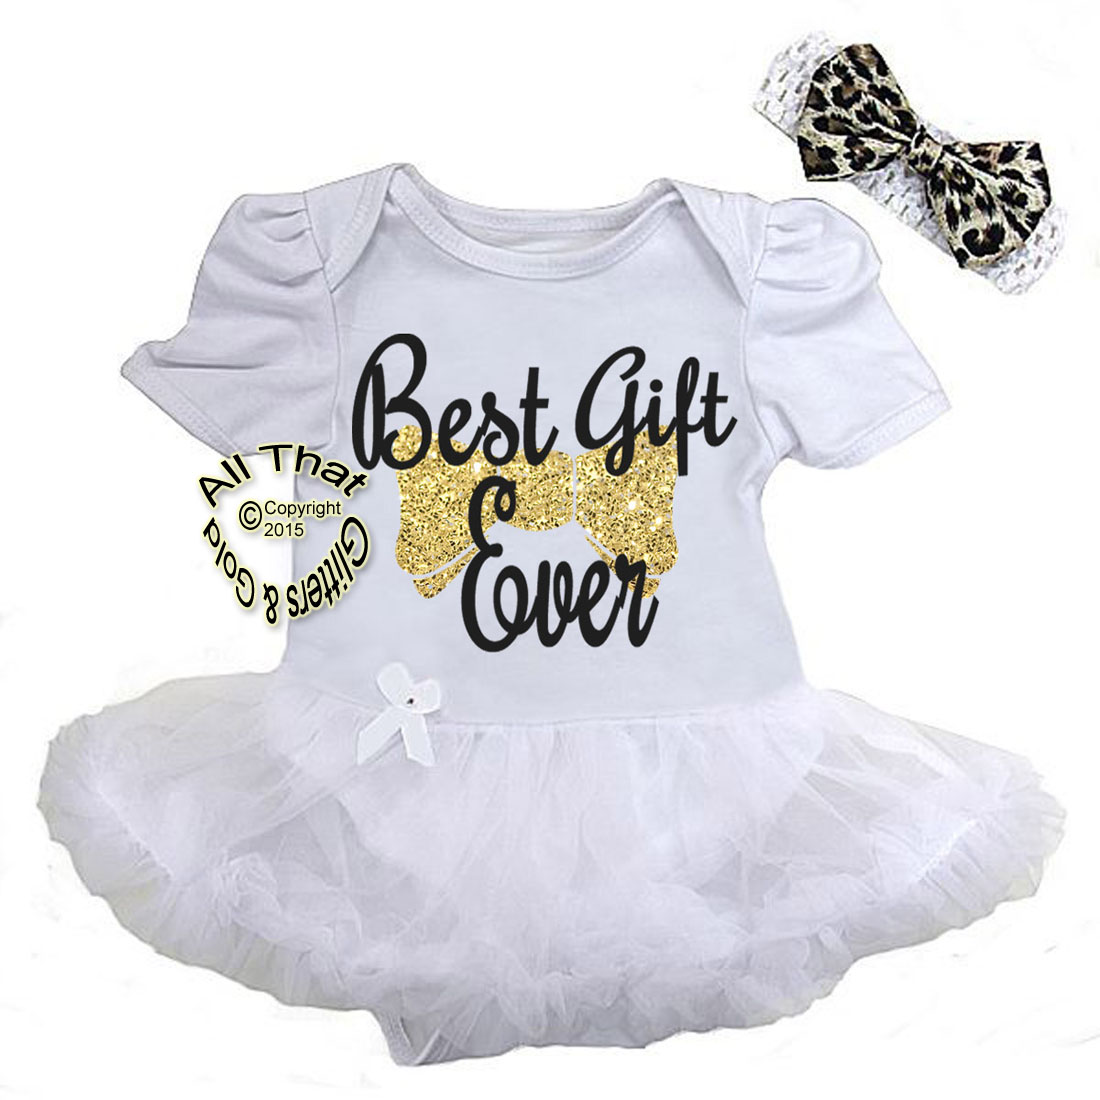 9e6b1bed1b46 Cute Glitter Gold Clothing For Babies - Funny Onesies - Cute Baby ...